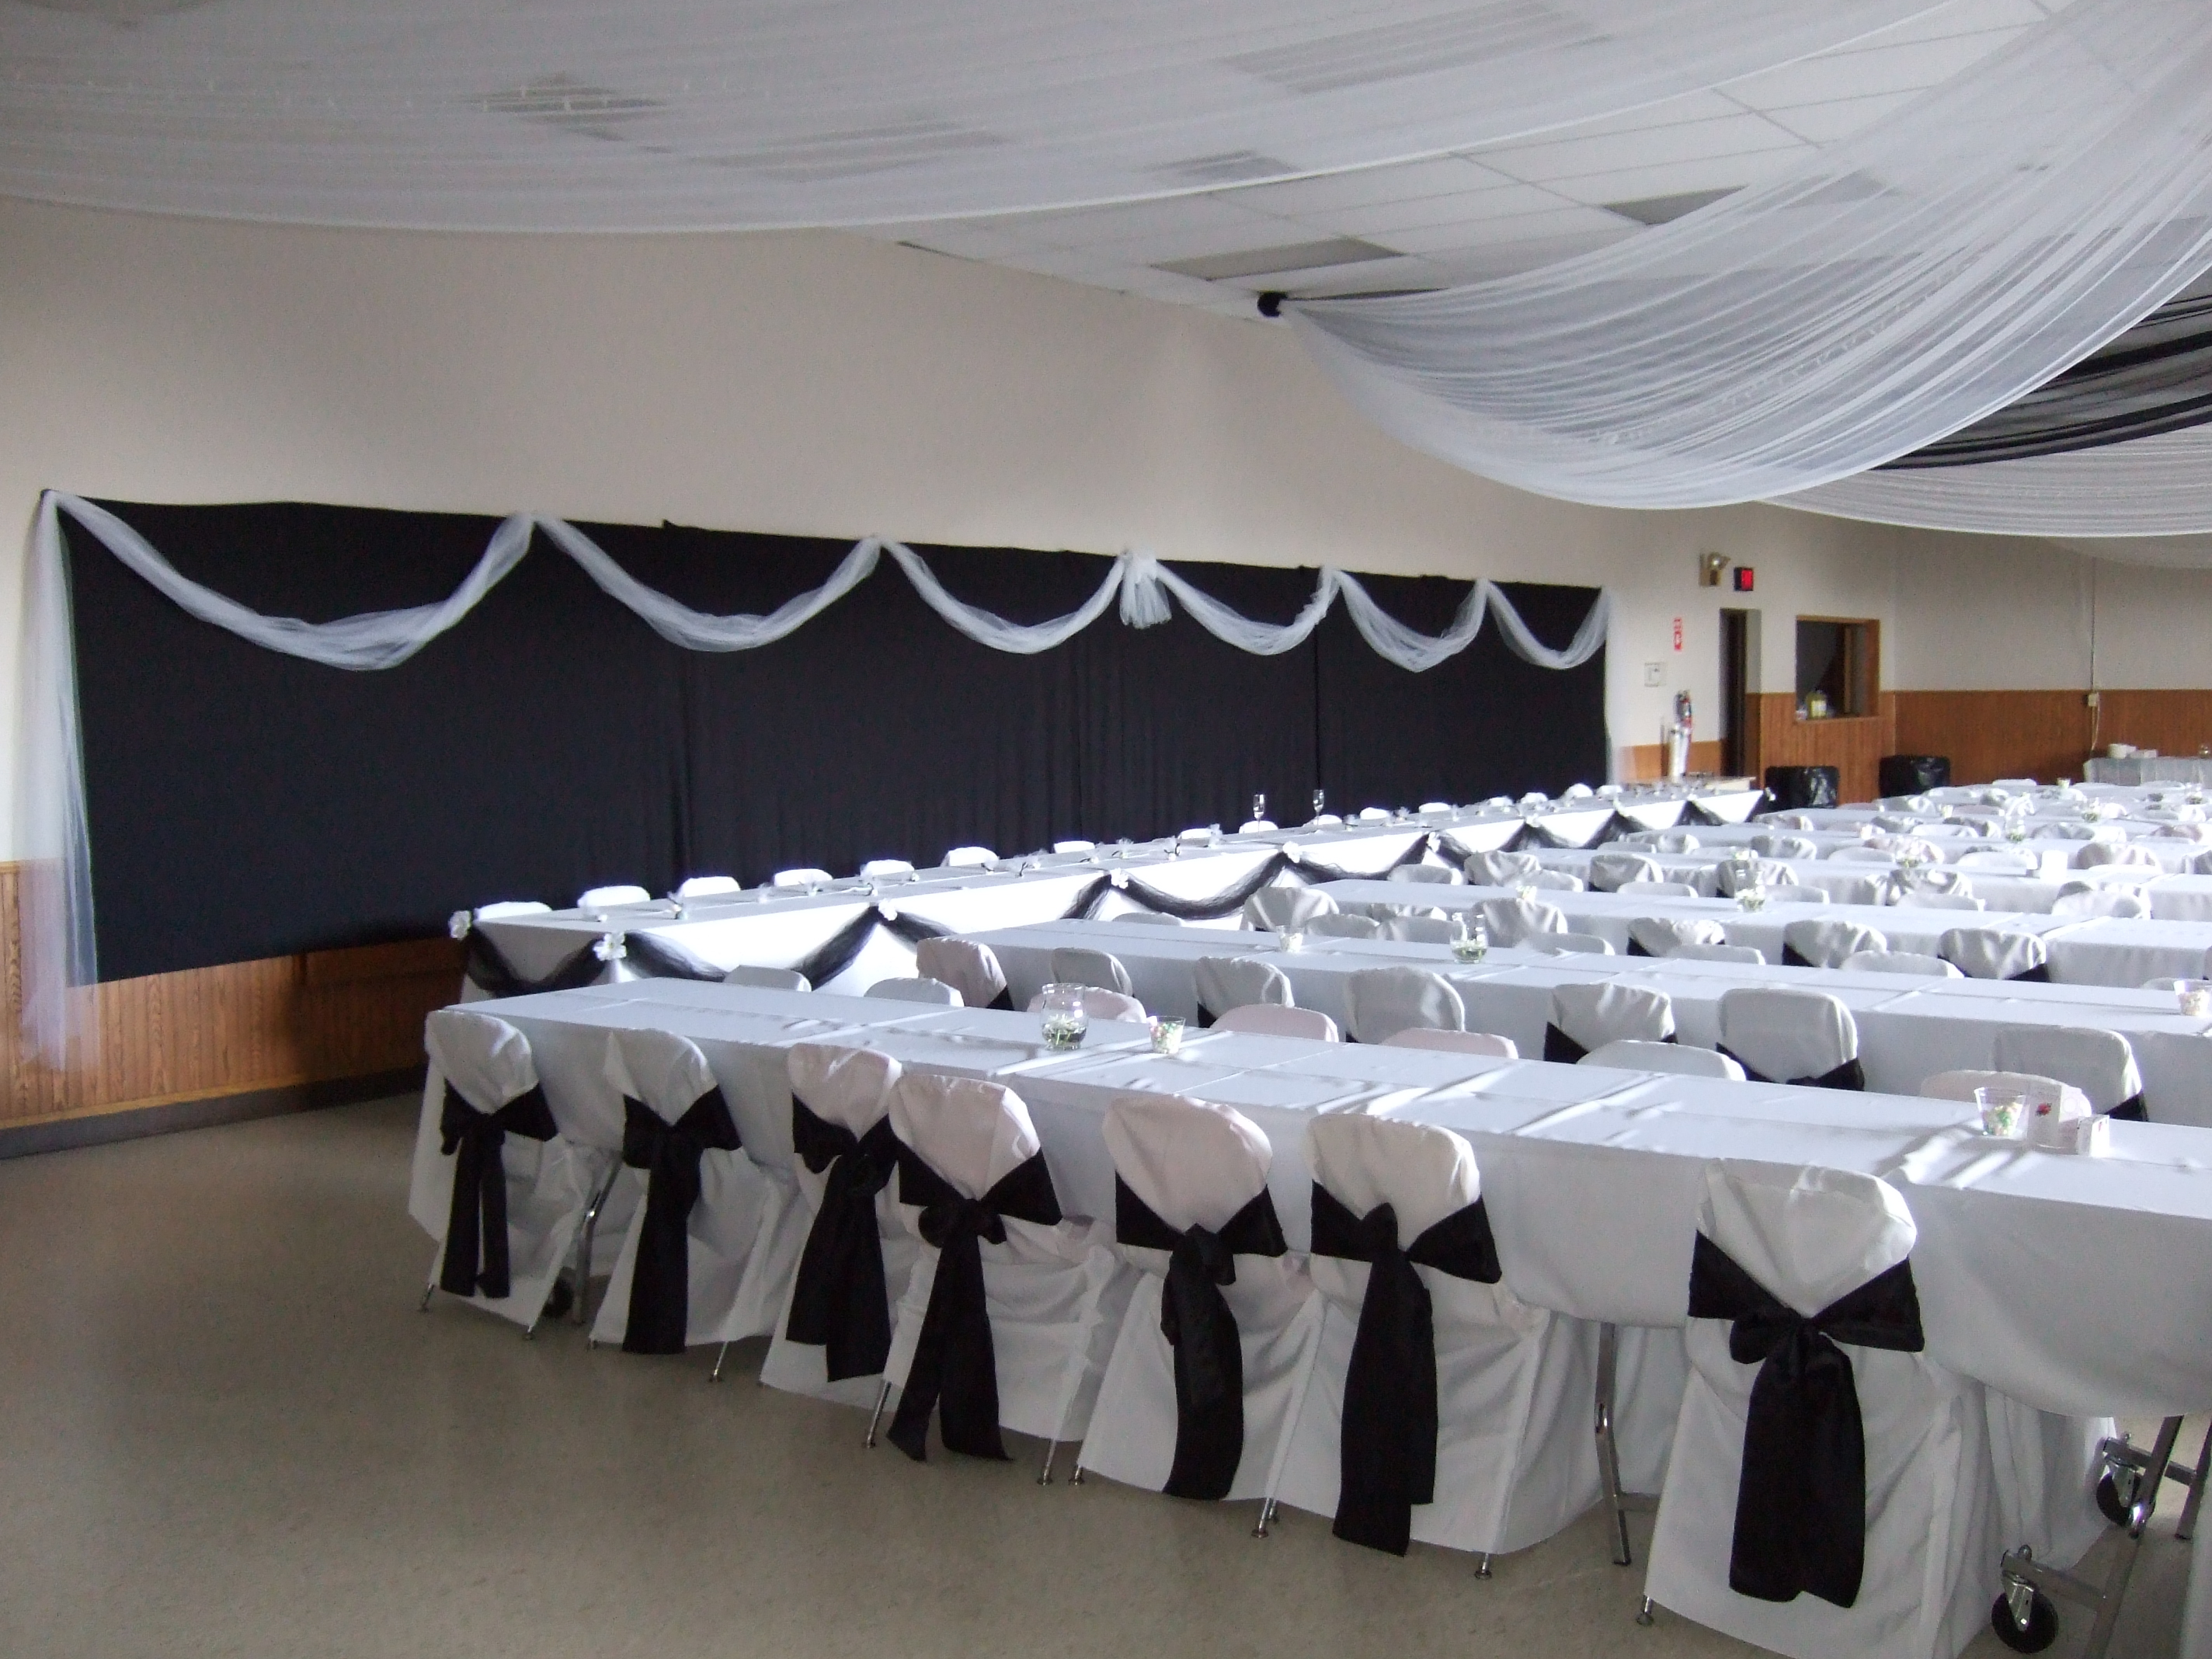 chair cover rentals rockford il china mall covers hall info no adhesive tape hooks of any kind on walls doors voting booths or ceiling this includes all 3m tapes hook products duct scotch